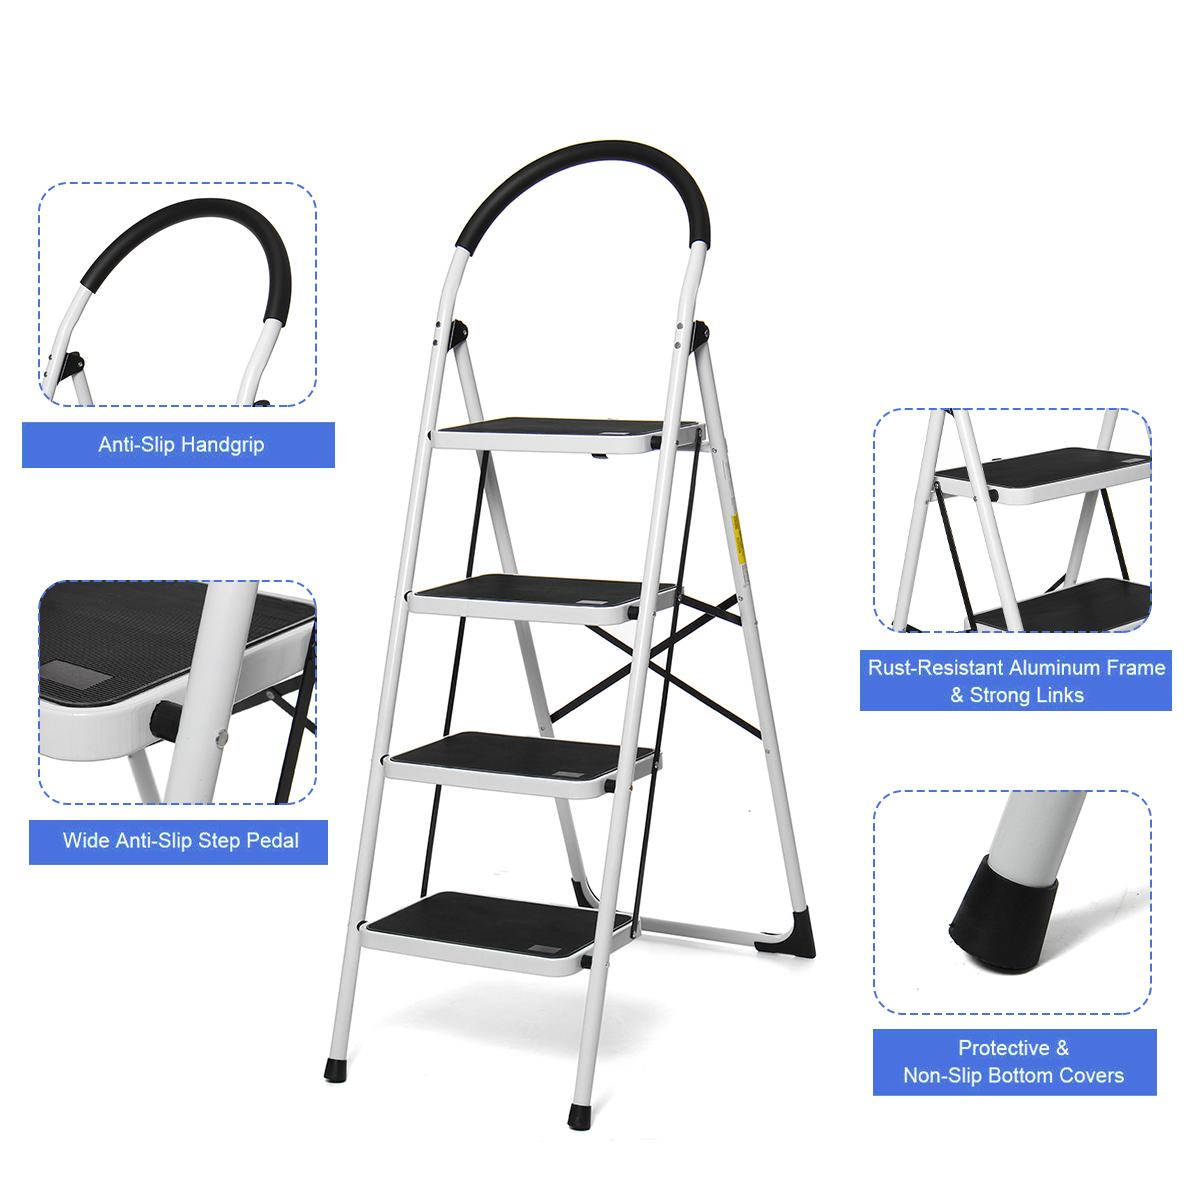 4 Step Ladder Folding Aluminium Ladders Multi-Purpose Extension Ladder Non-slip Handrail Work Platform 330lb Capacity Tools